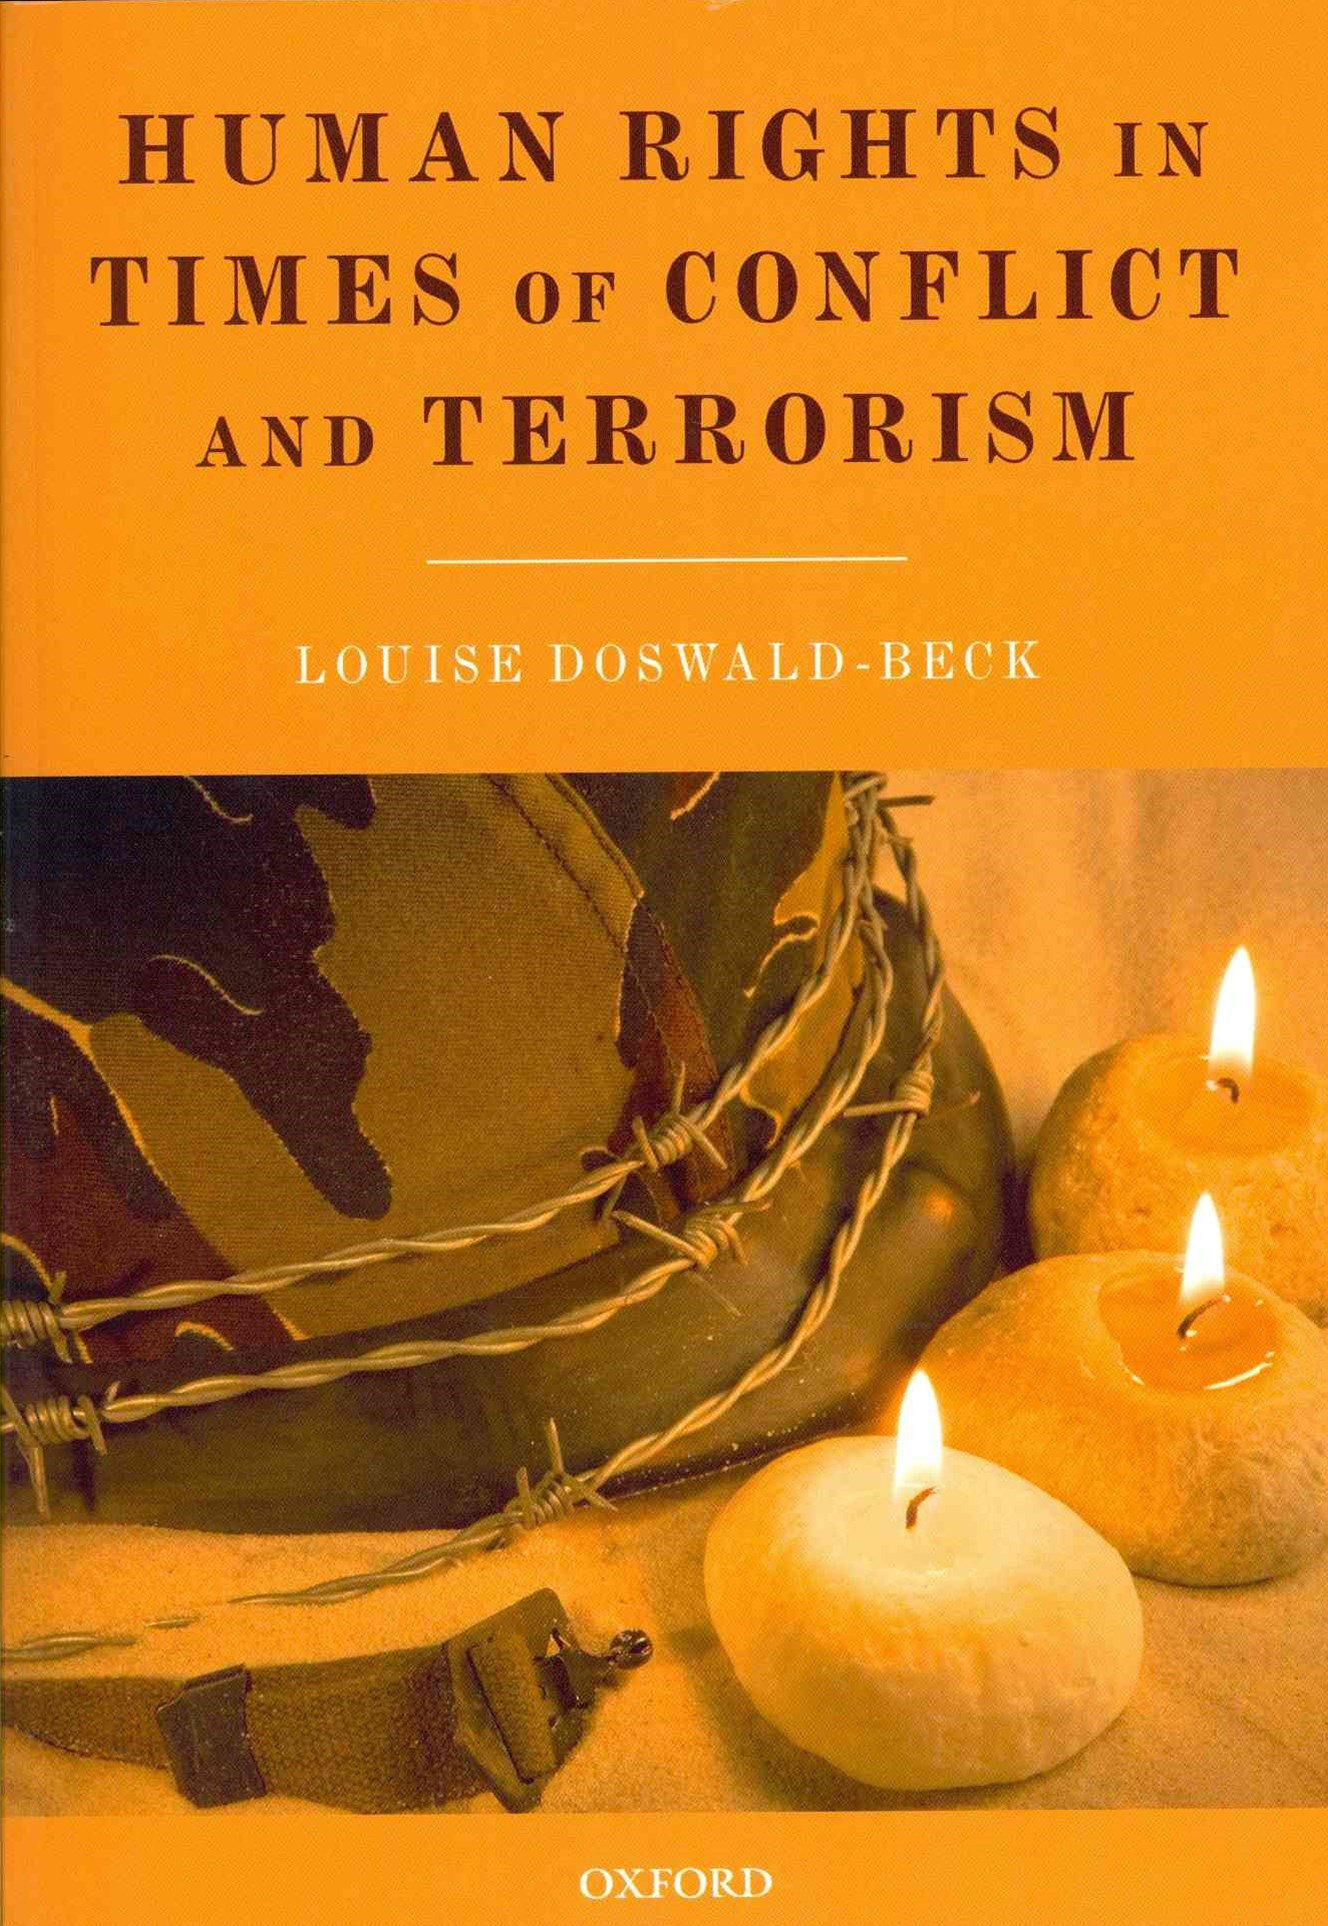 Human Rights in Times of Conflict and Terrorism